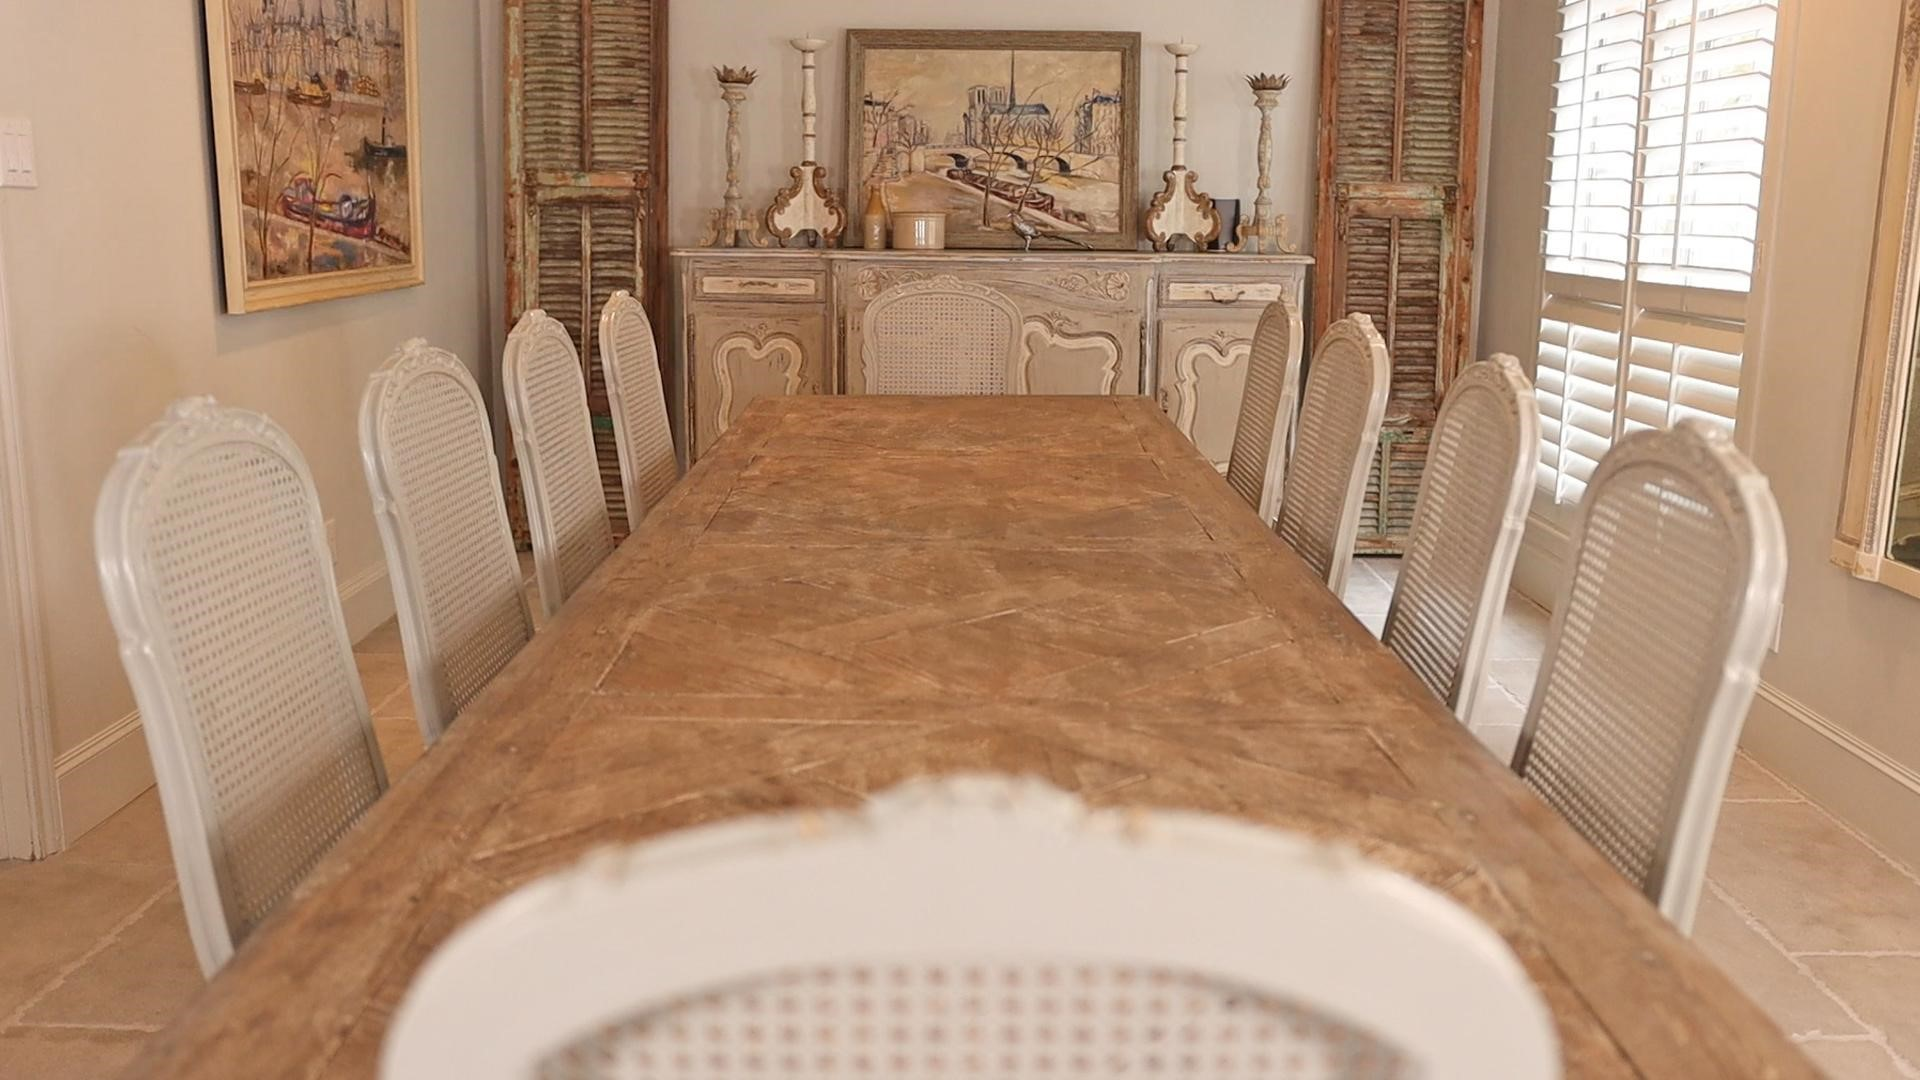 A long and narrow view of the large dining room space in French country style